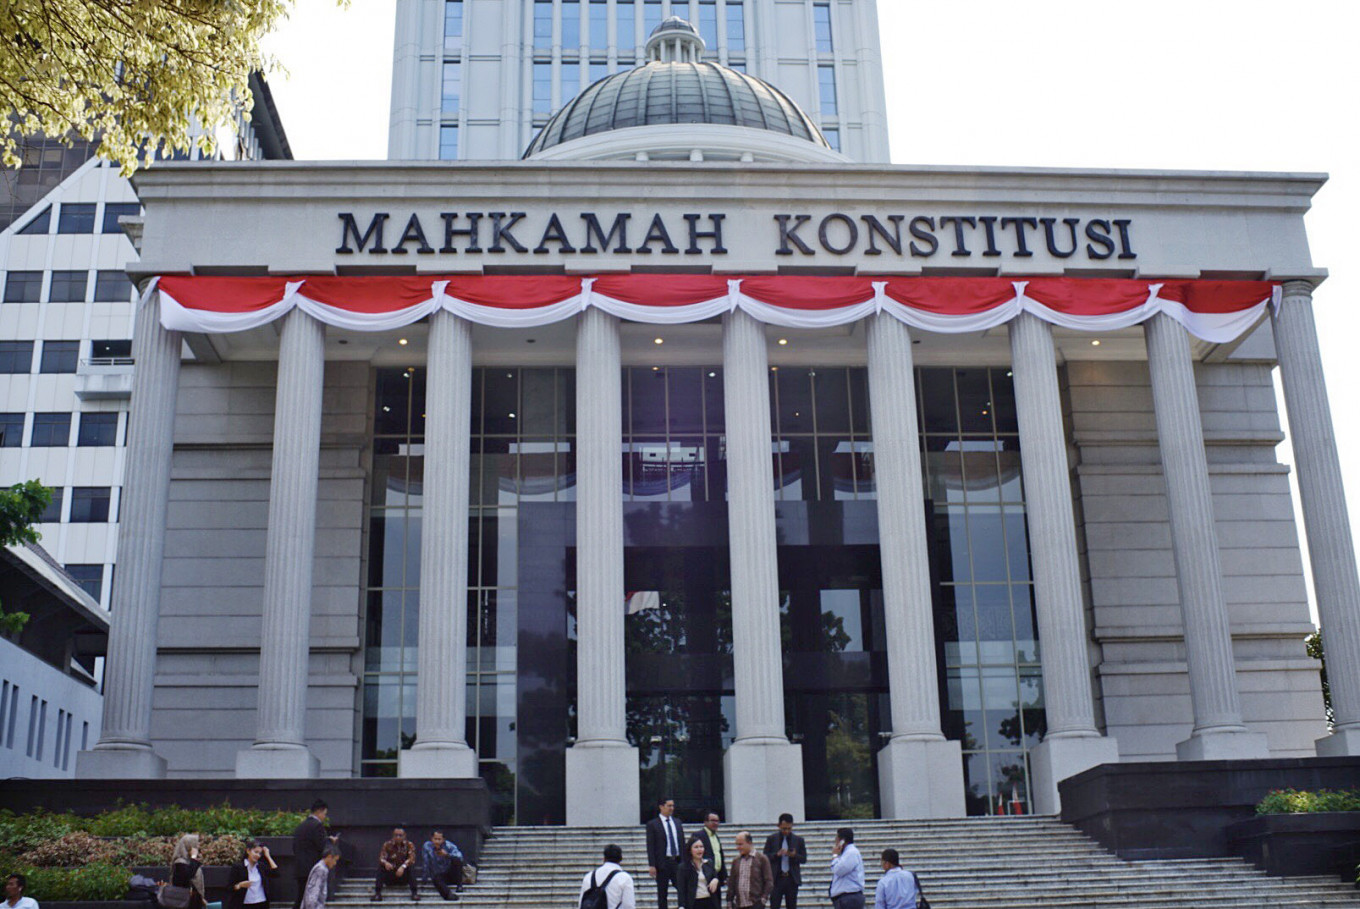 Angered by Perppu on pandemic response, civil groups turn to Constitutional Court